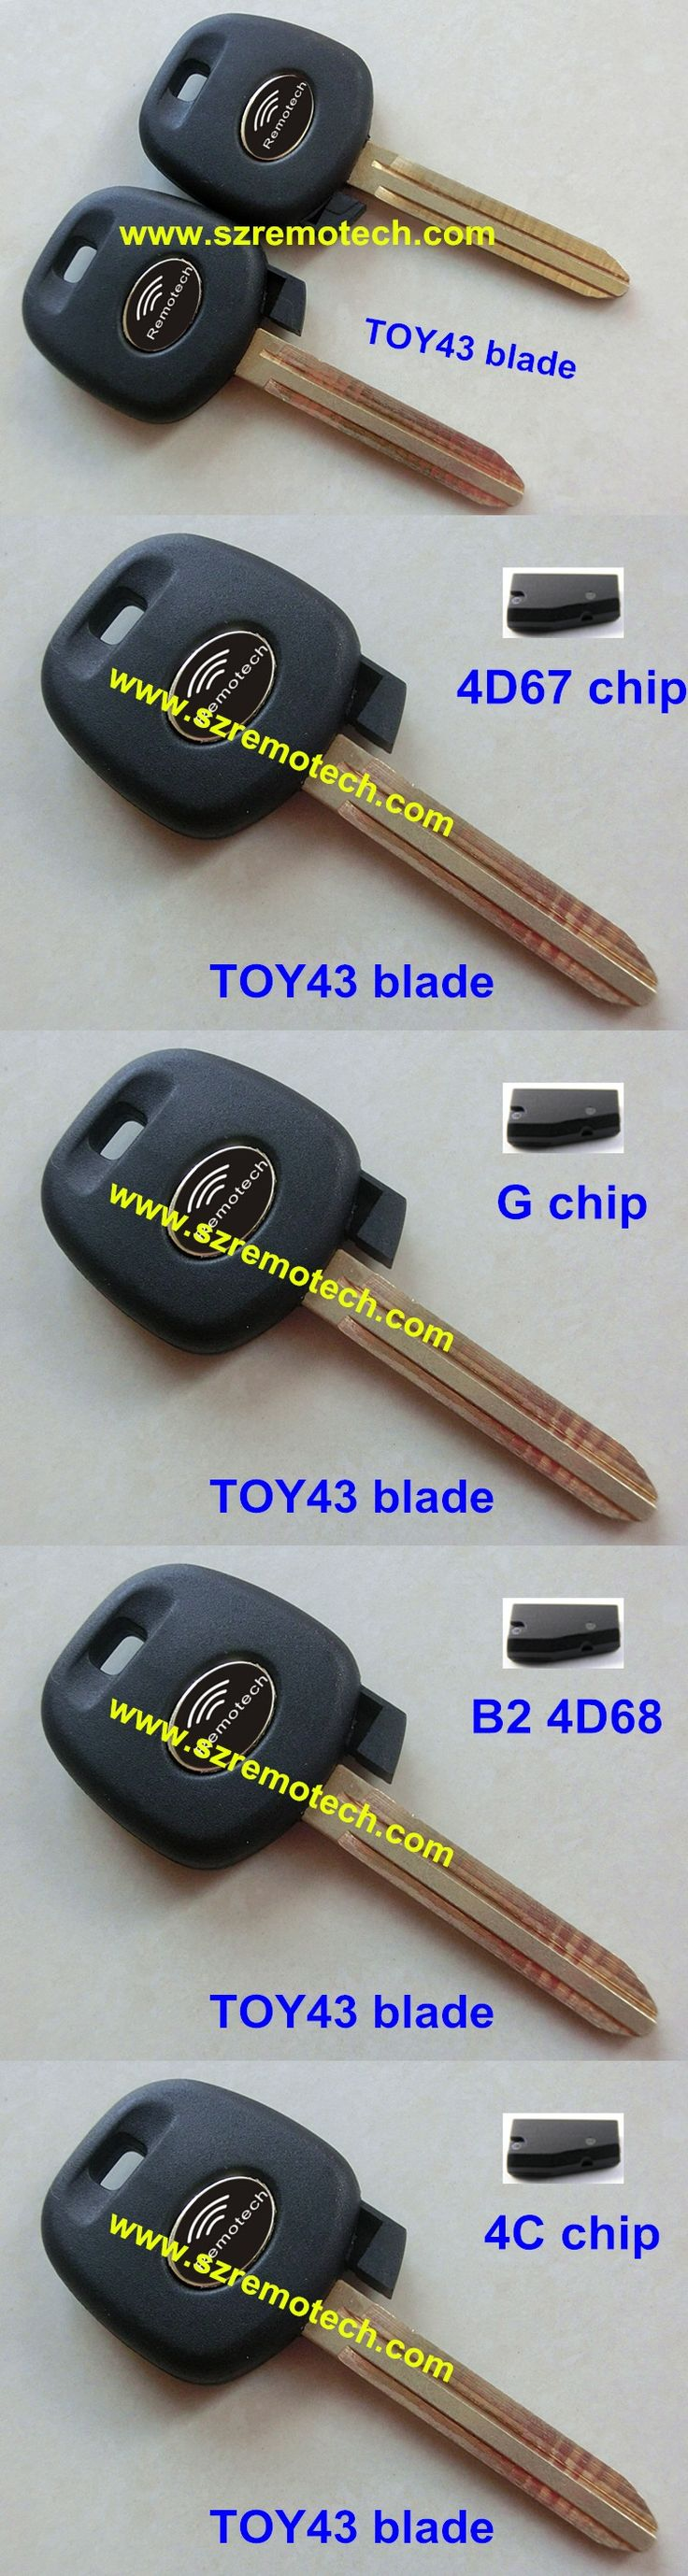 RMLKS Replacement Transponder Key Fob With 4C/4D67/4D68/G Chip TOY43 Blade Fit For Toyota Camry Corolla 4D67 Chip Key Fob